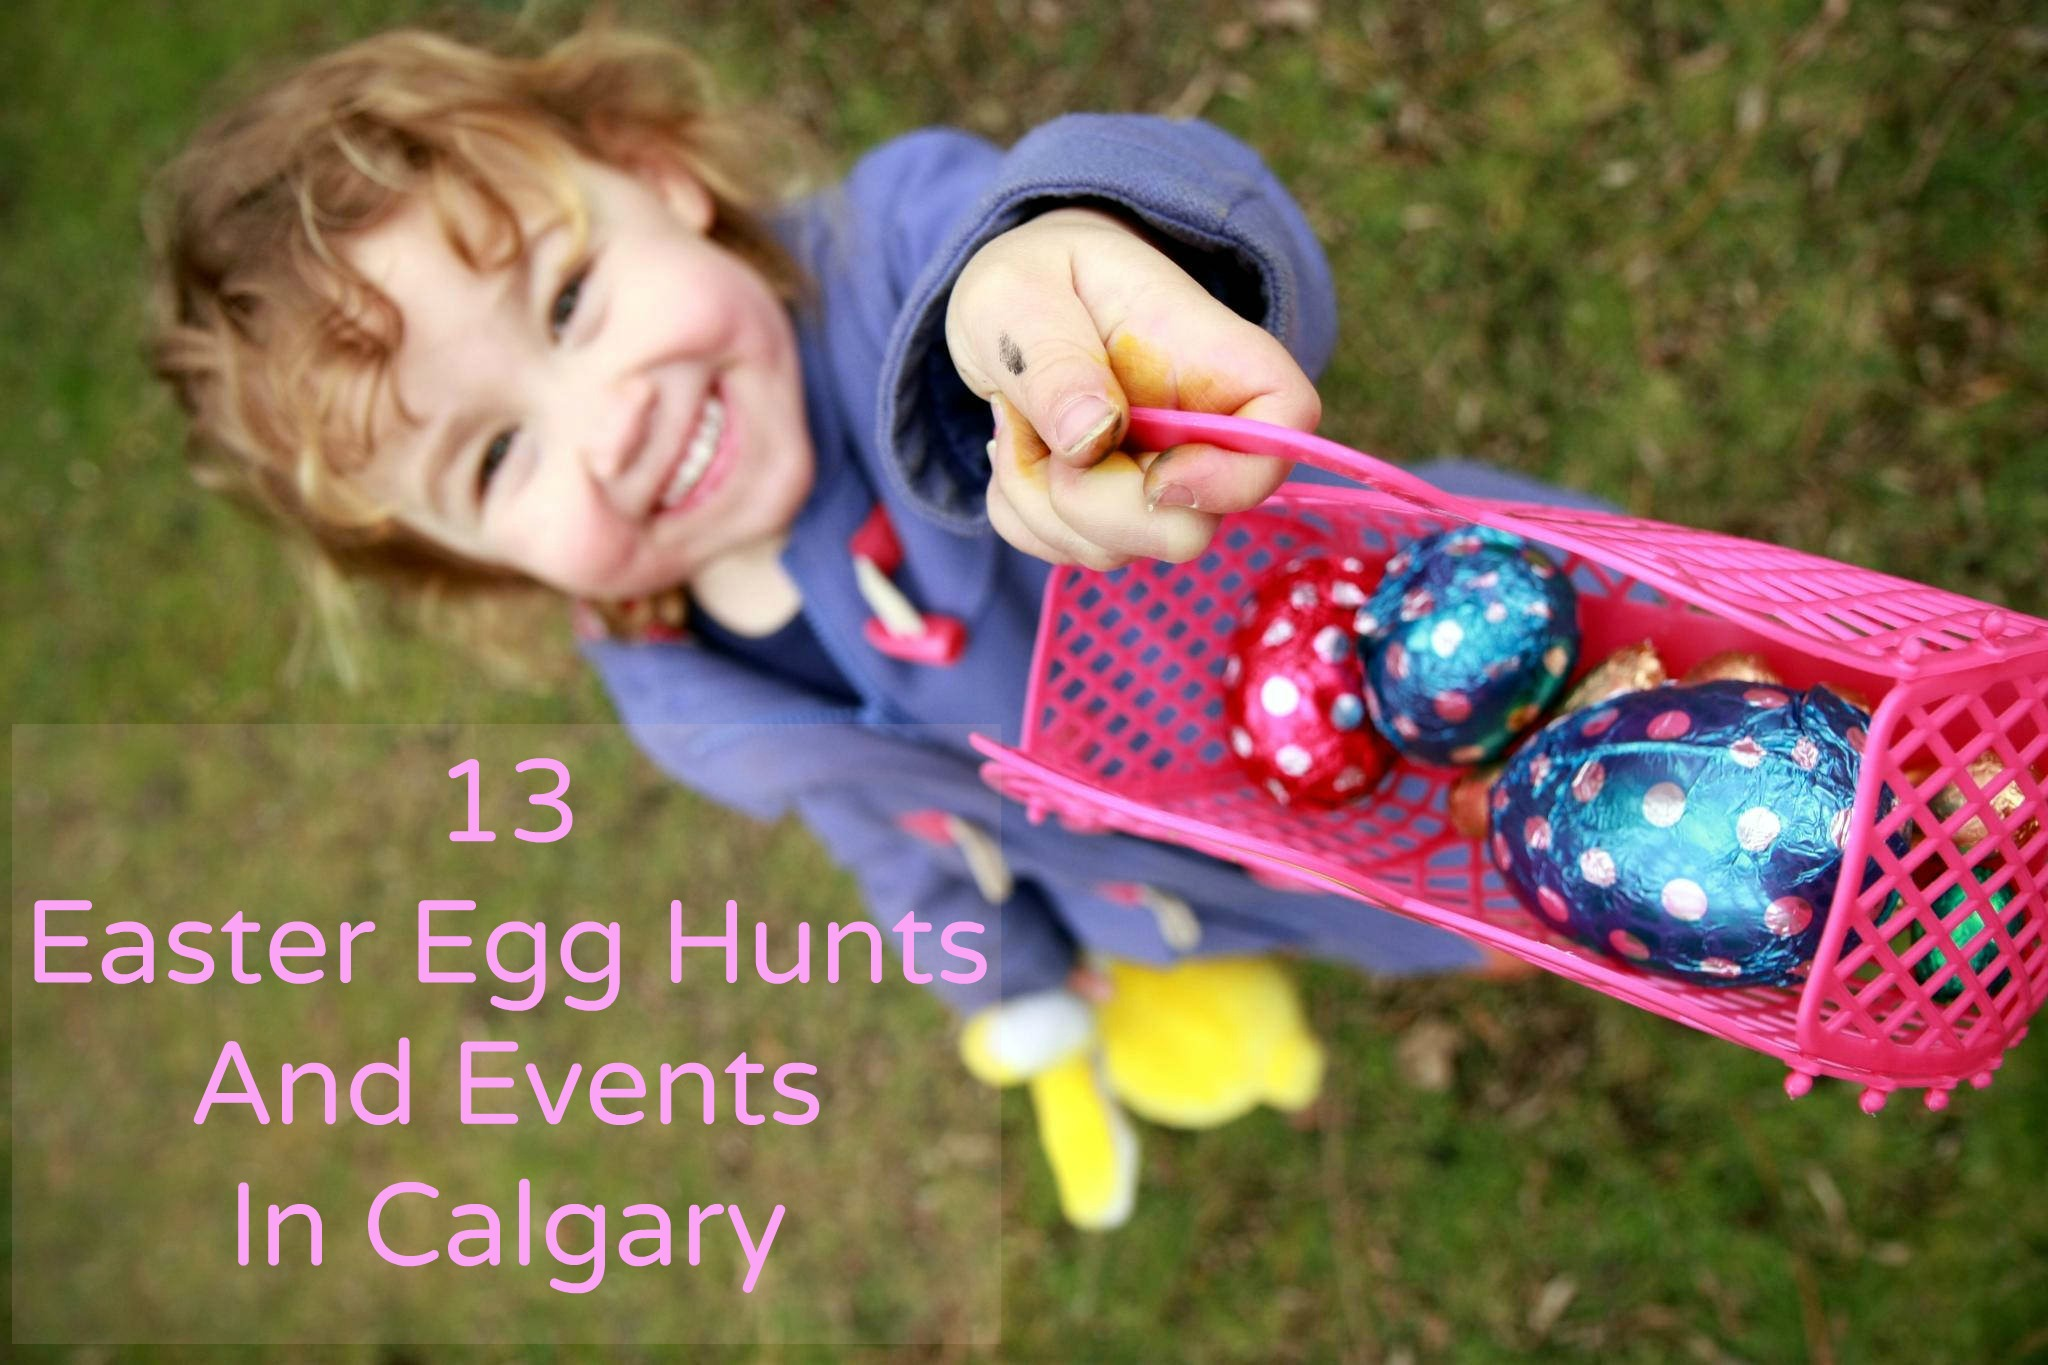 13 Easter Egg Hunts In Calgary For 2016